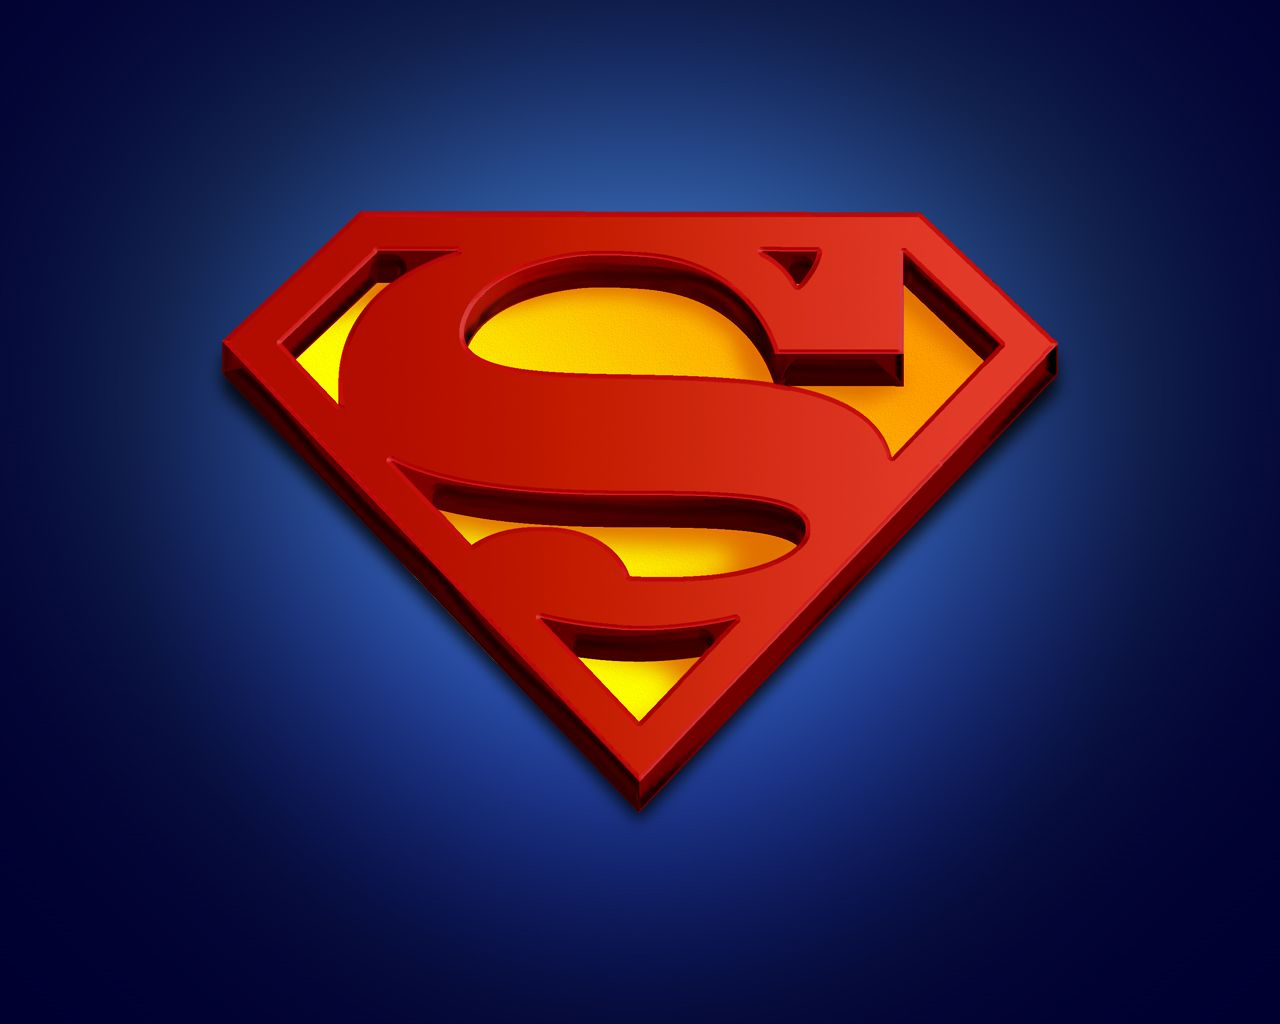 Pin By A G On Superman Pinterest Superman Wallpaper And Cape